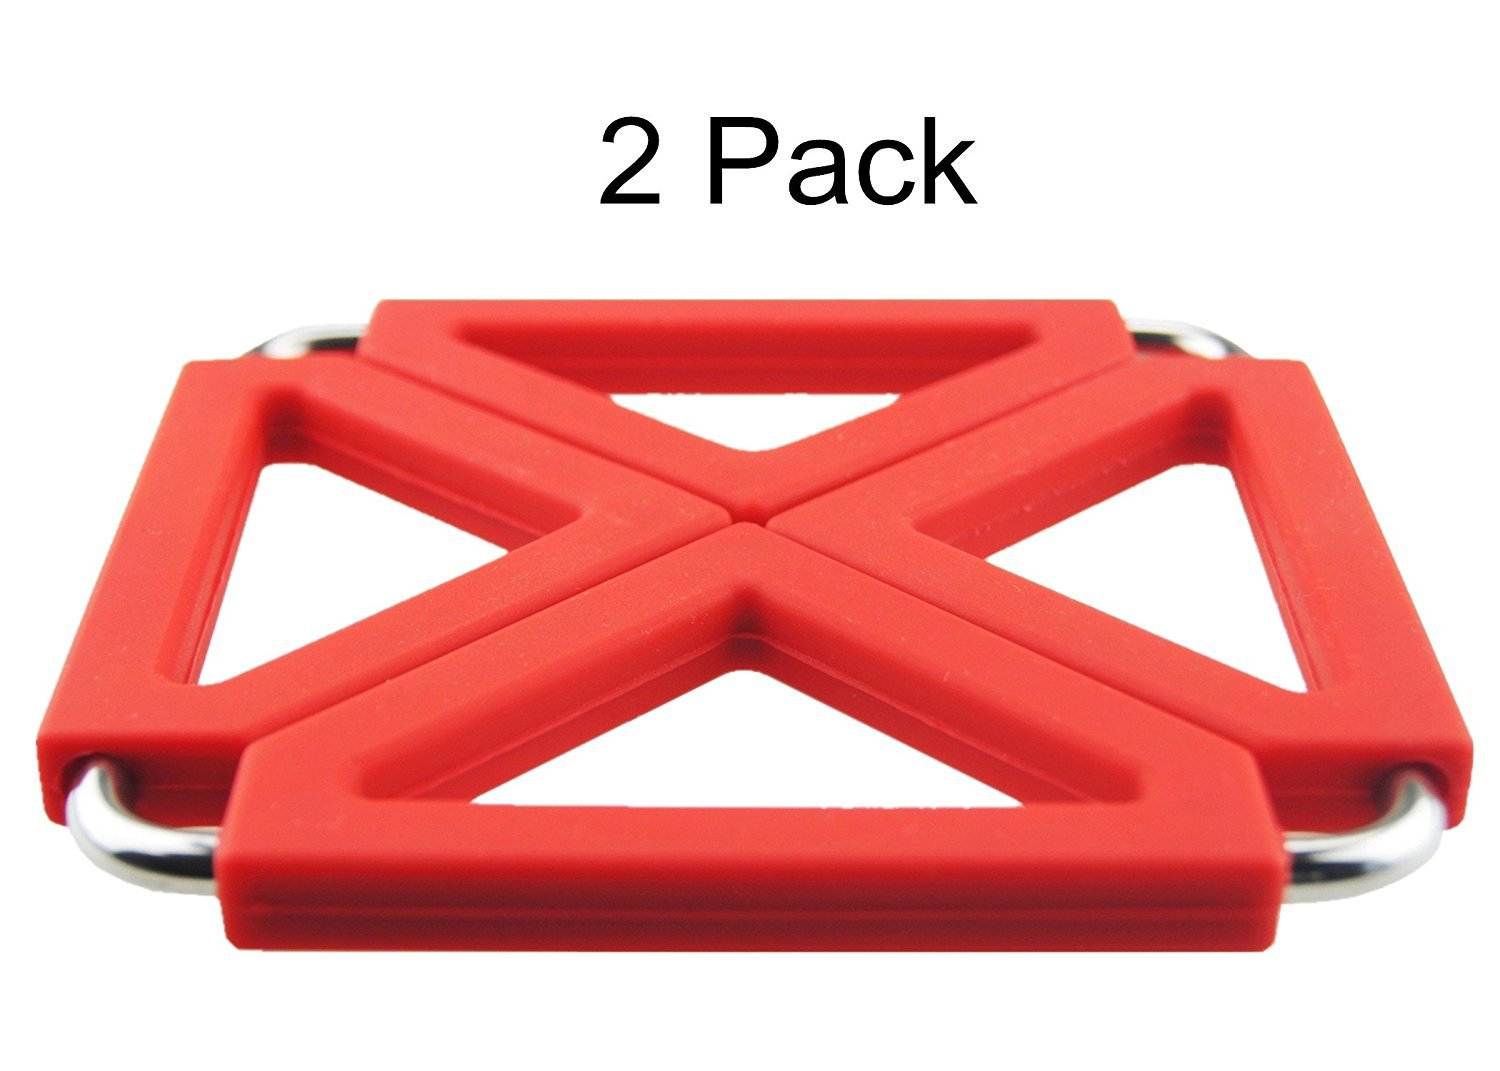 COJOY Expandable Silicone & Metal Trivet Mat, Hot Pot Holder Pads, 6.3'' Square Red, Set of 2